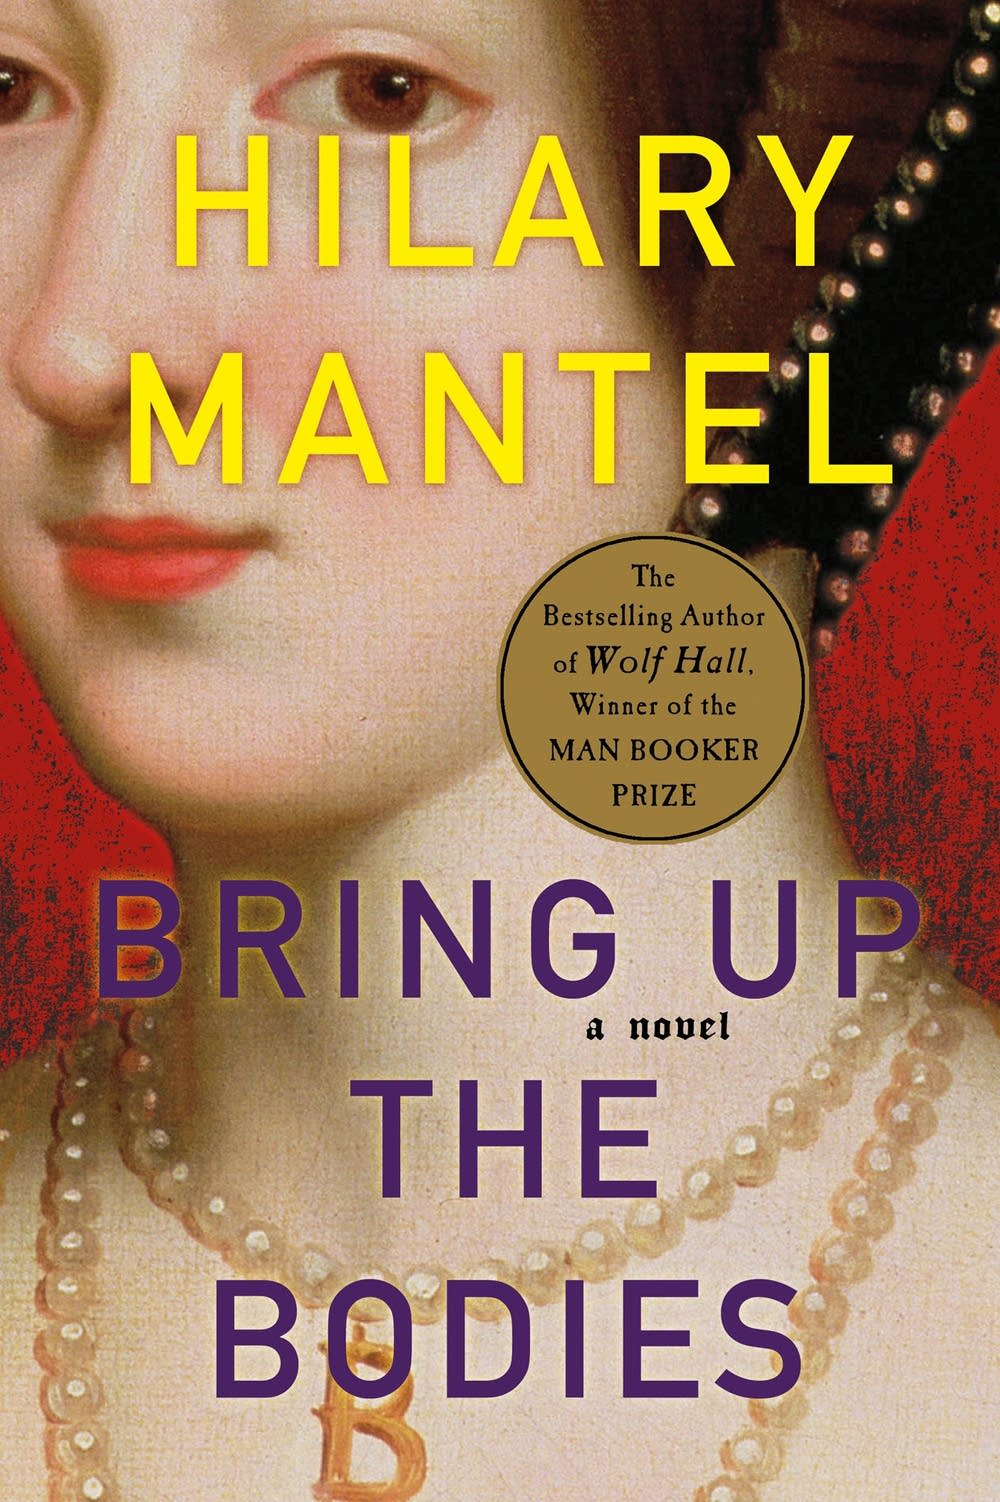 Hilary mantel new book